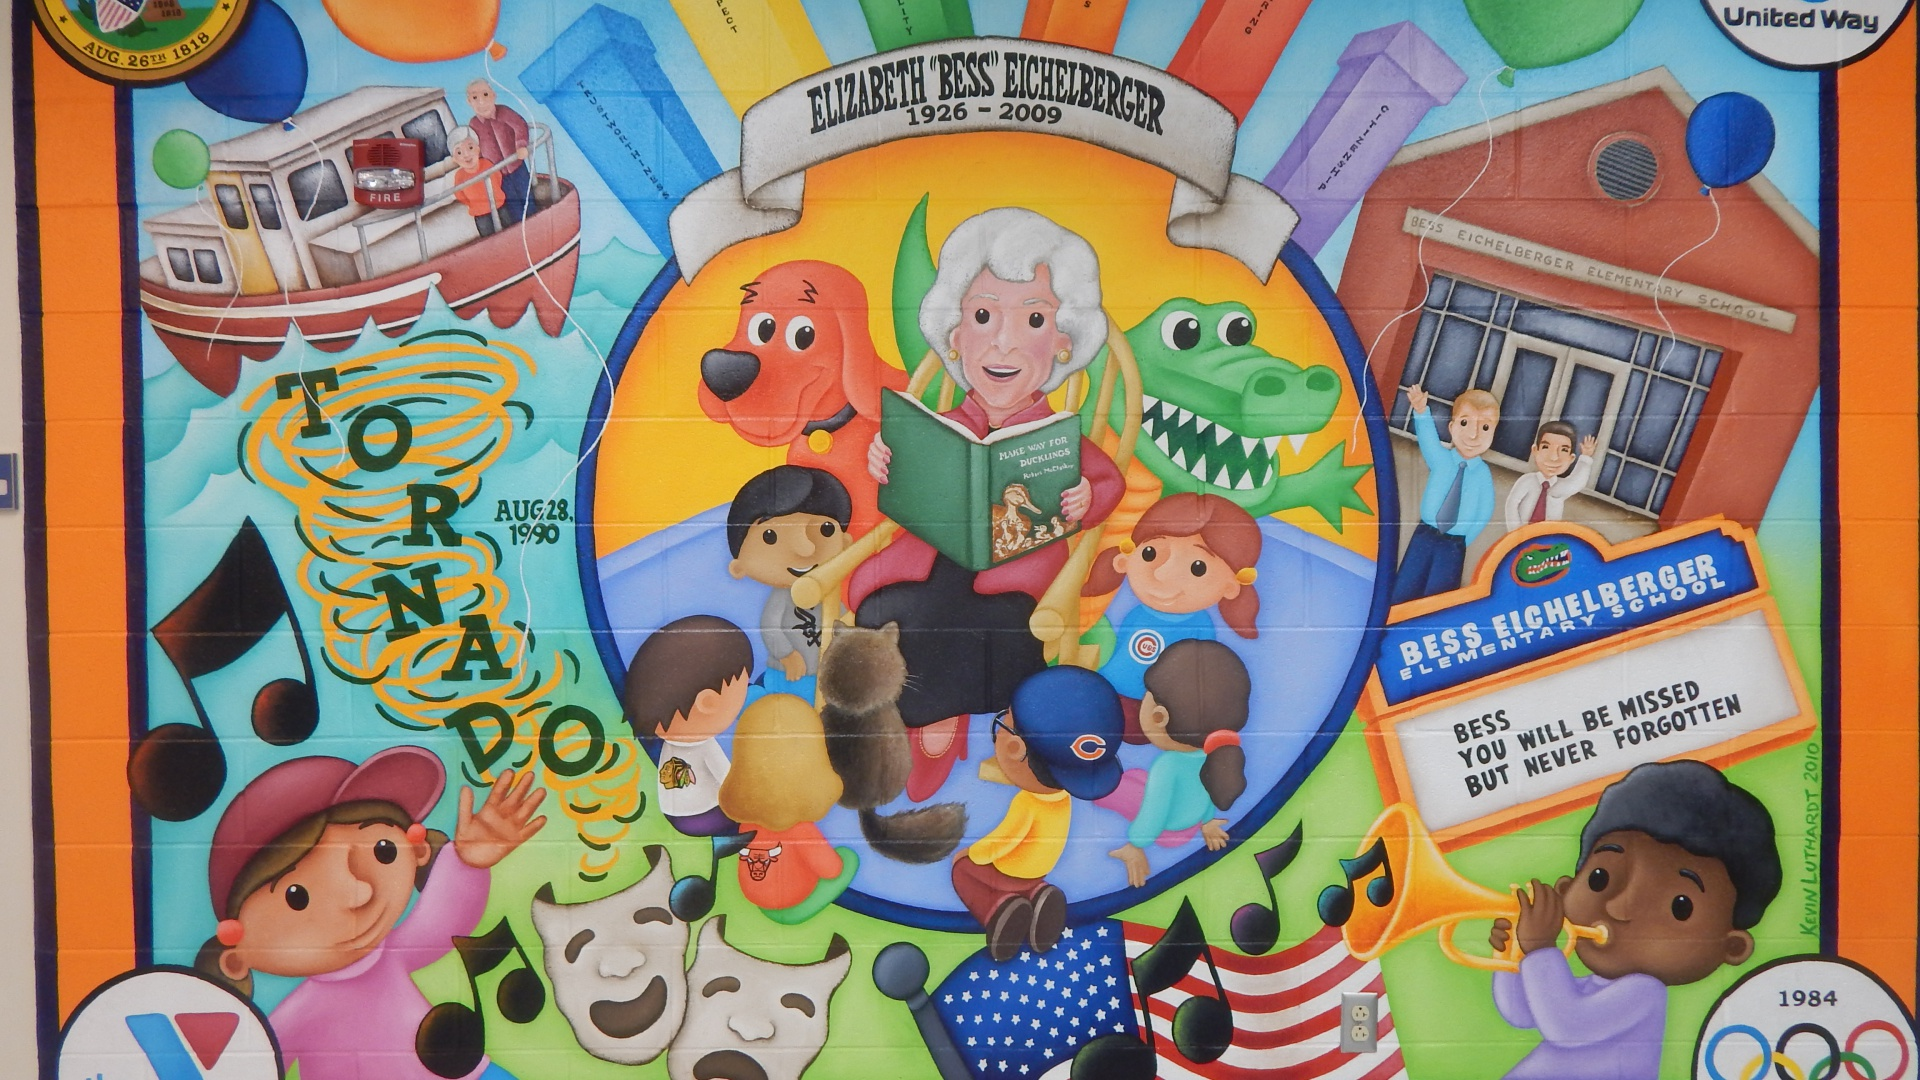 slidshow image - Welcome to Eichelberger Elementary - Mural